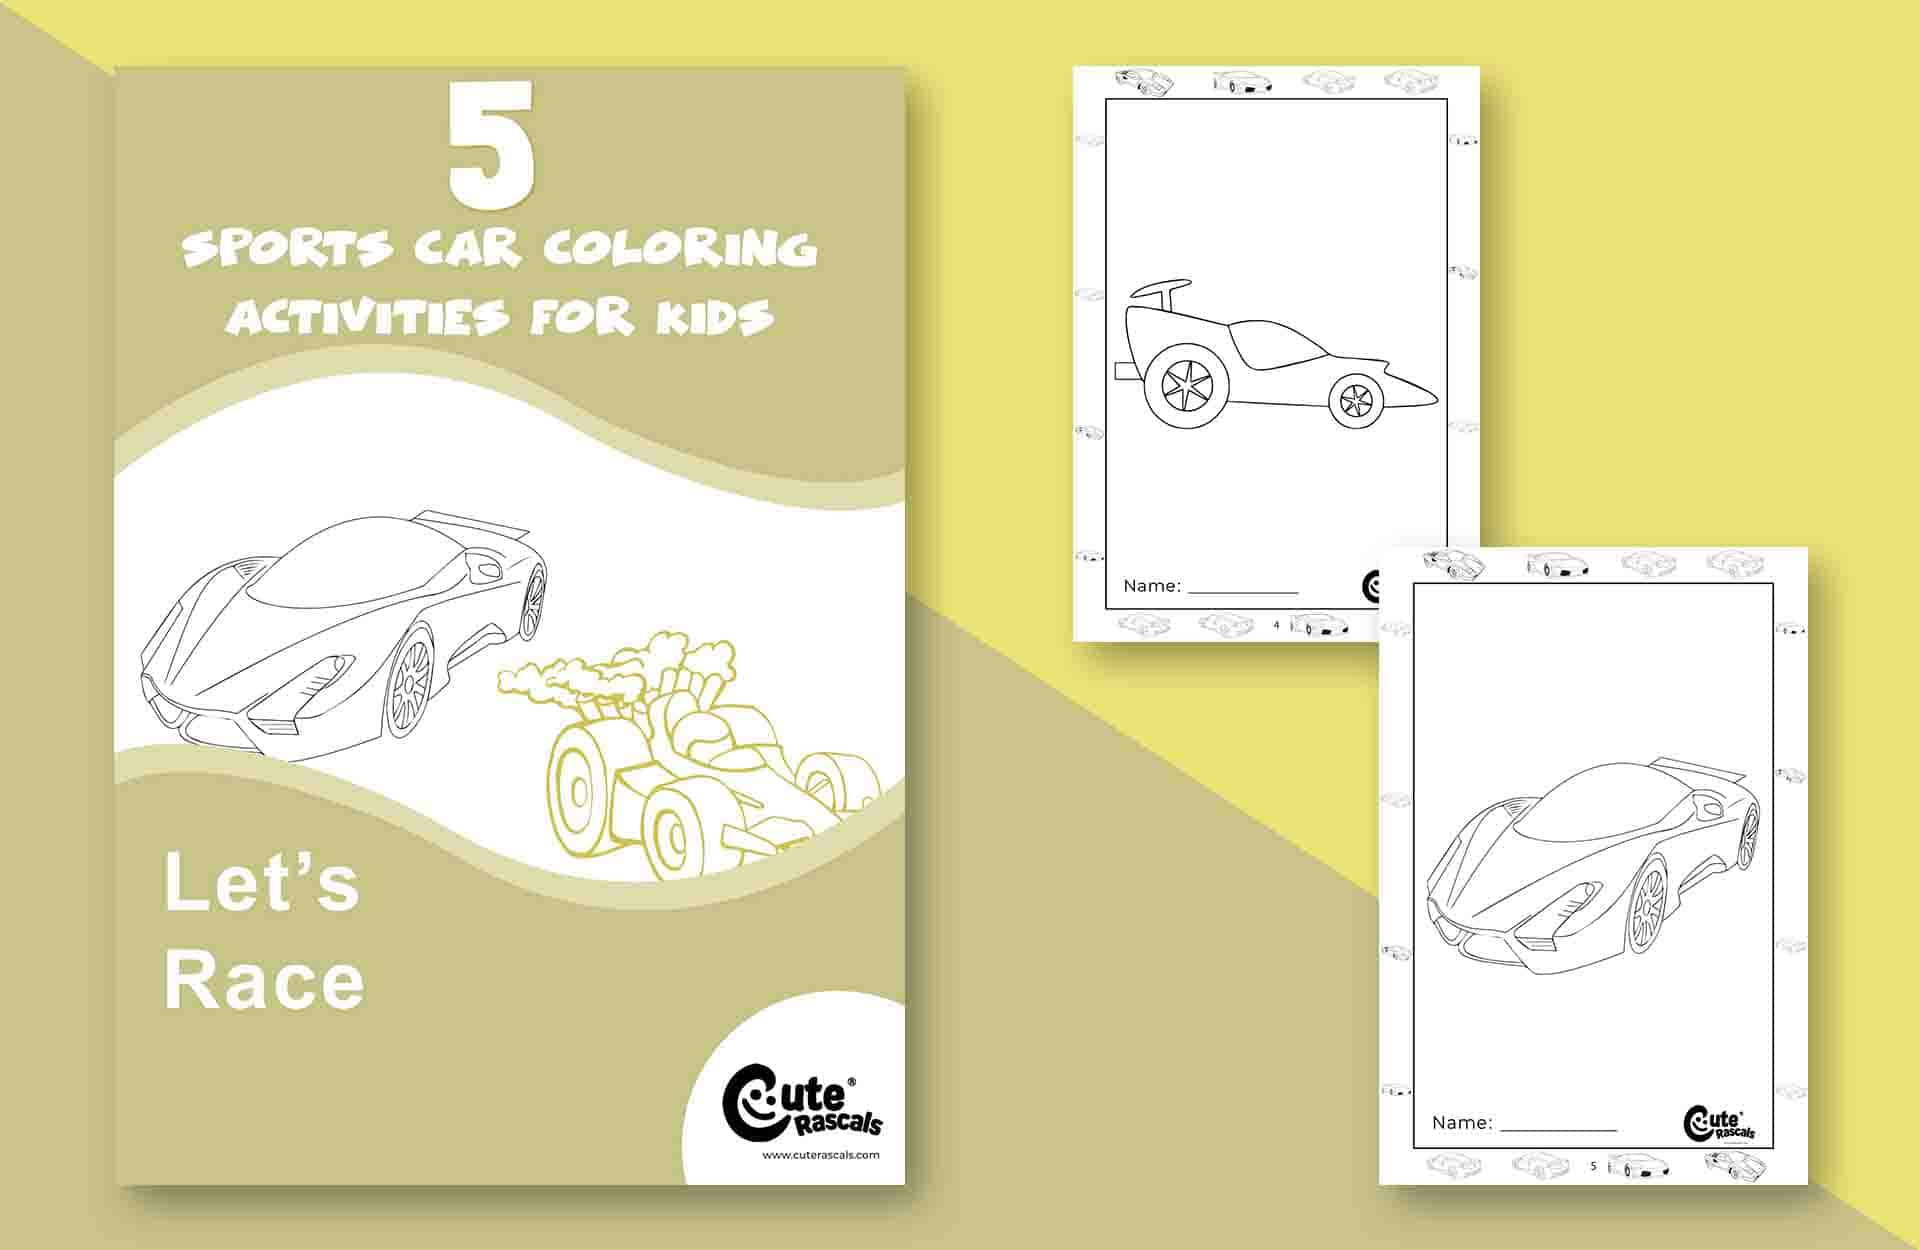 Top 5 Sports Car Coloring Pages for Kids to Enjoy